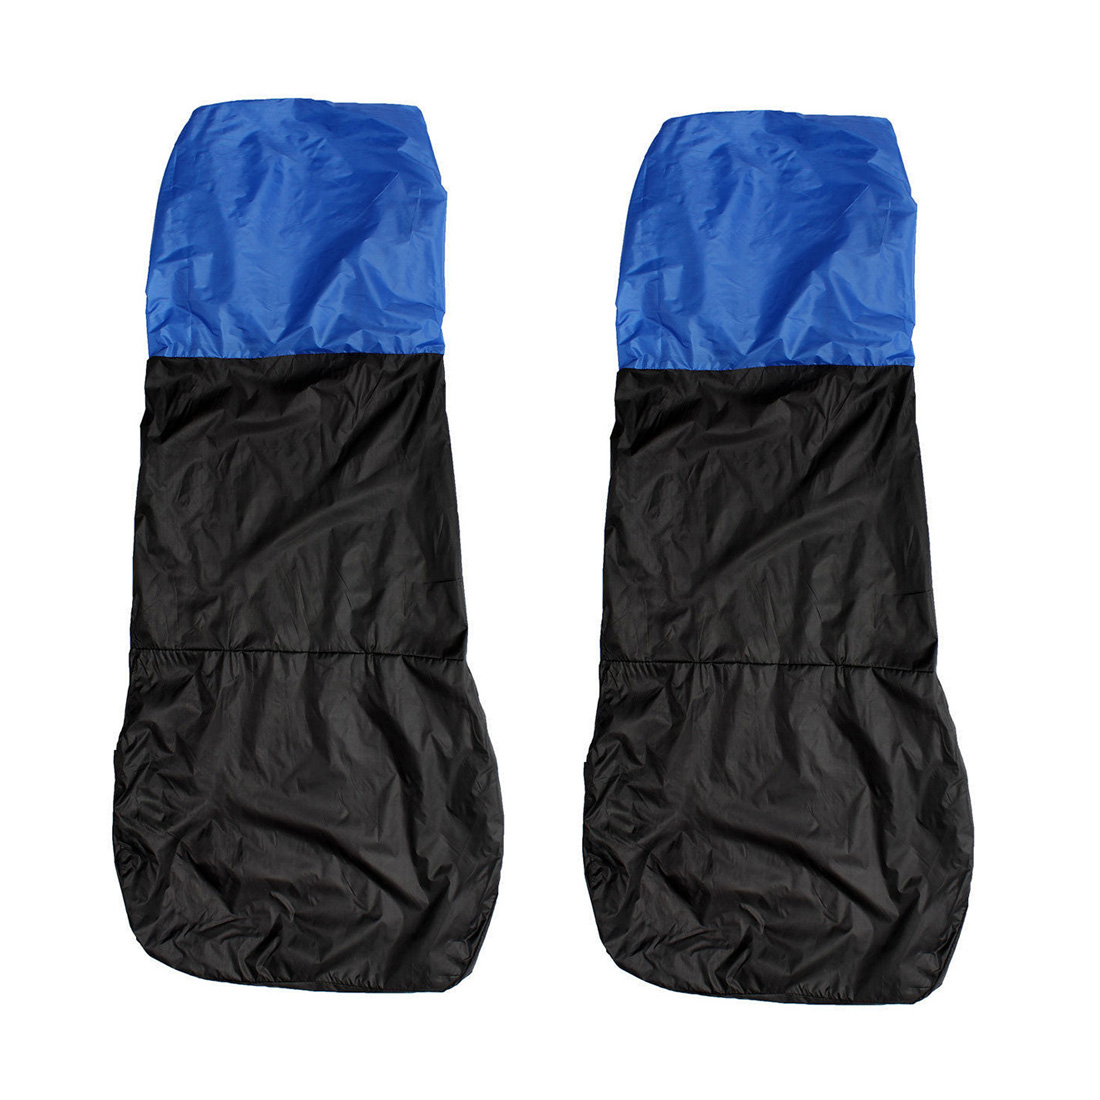 Promotion! 2 Universal CAR/VAN WATERPROOF Nylon BLUE / BLACK FRONT SEAT COVERS / PROTECTORS